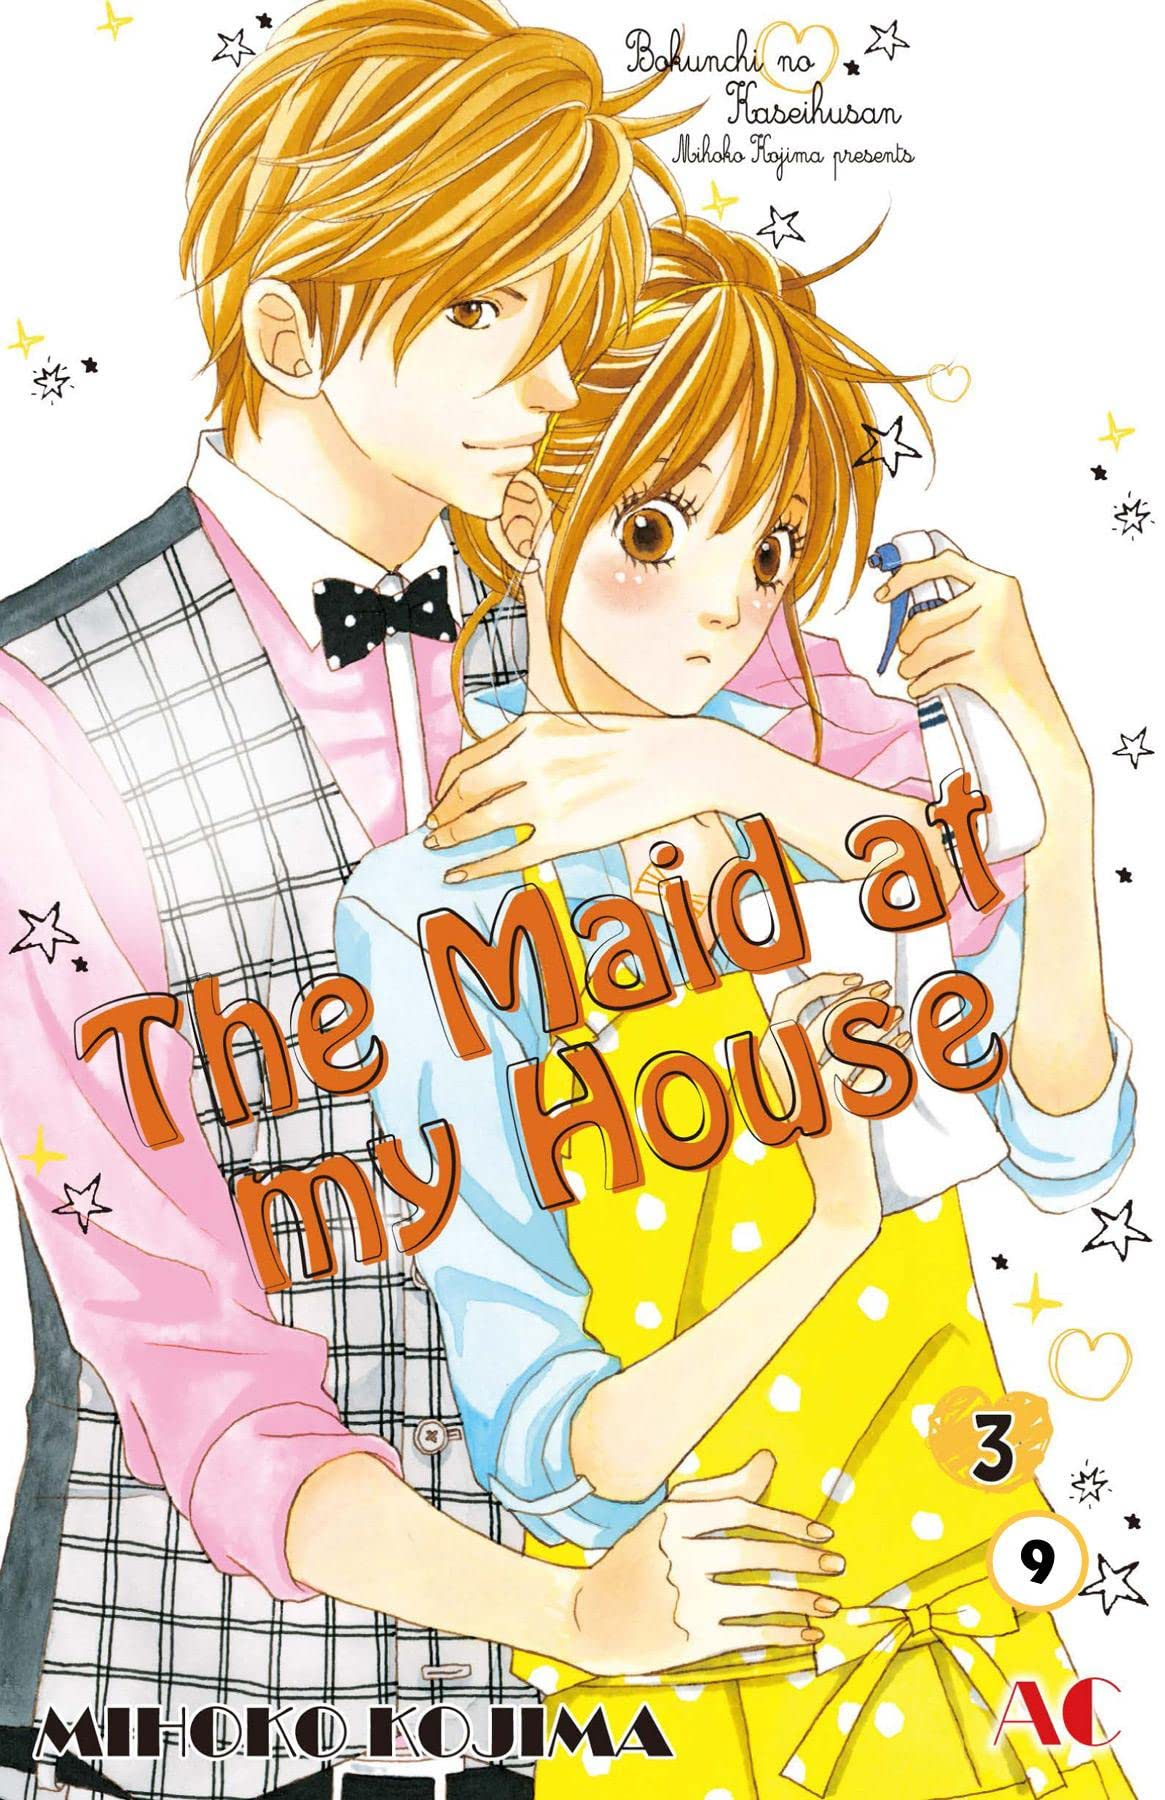 The Maid at my House #9